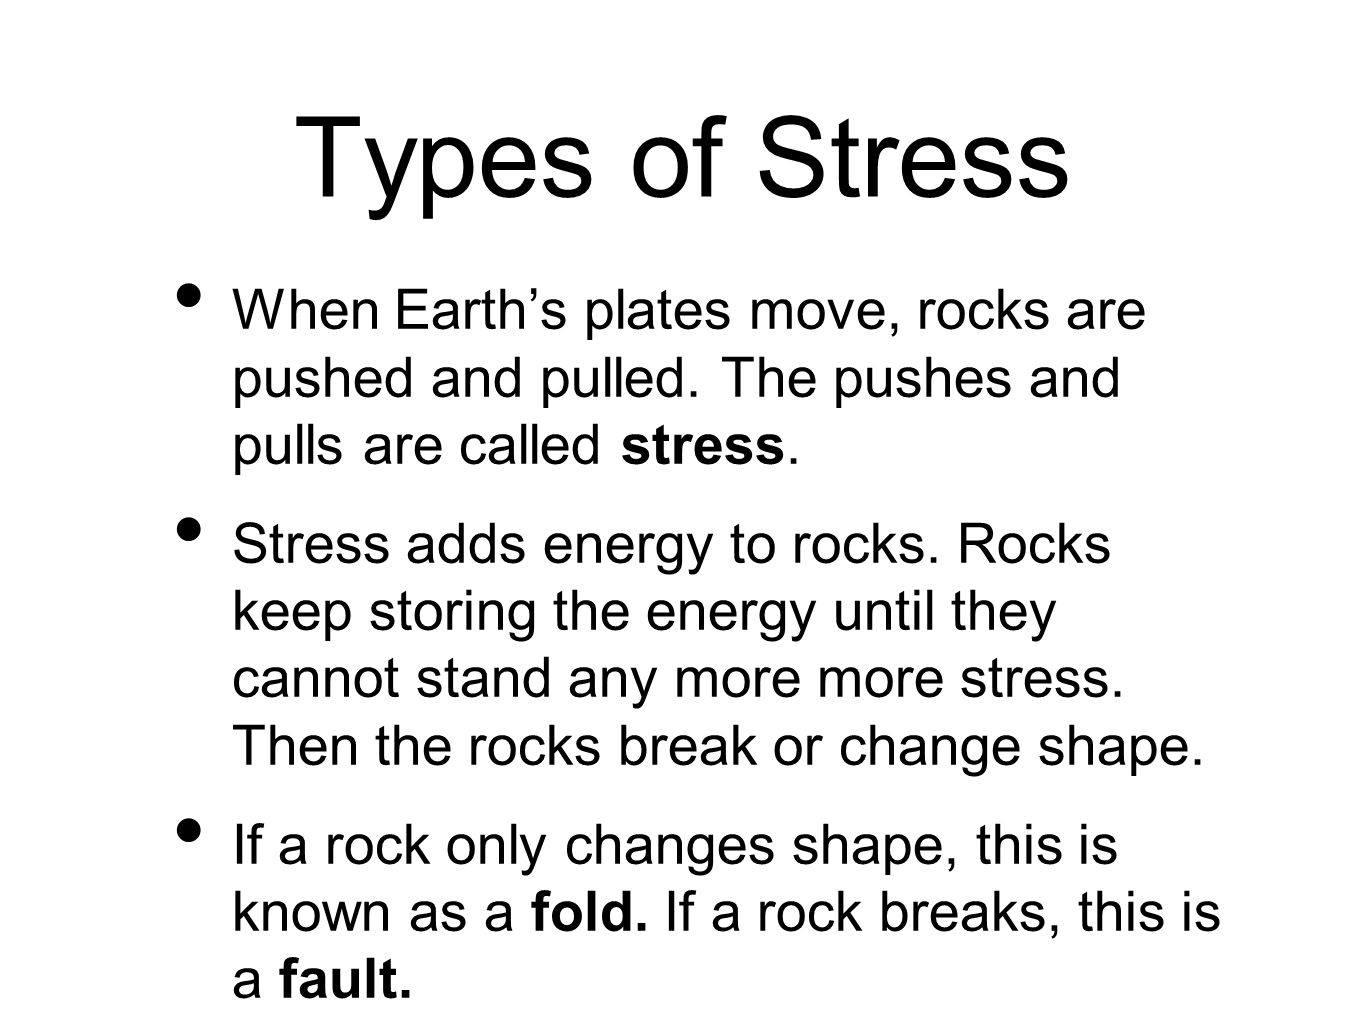 Types of Stress When Earth's plates move, rocks are pushed and pulled. The pushes and pulls are called stress.